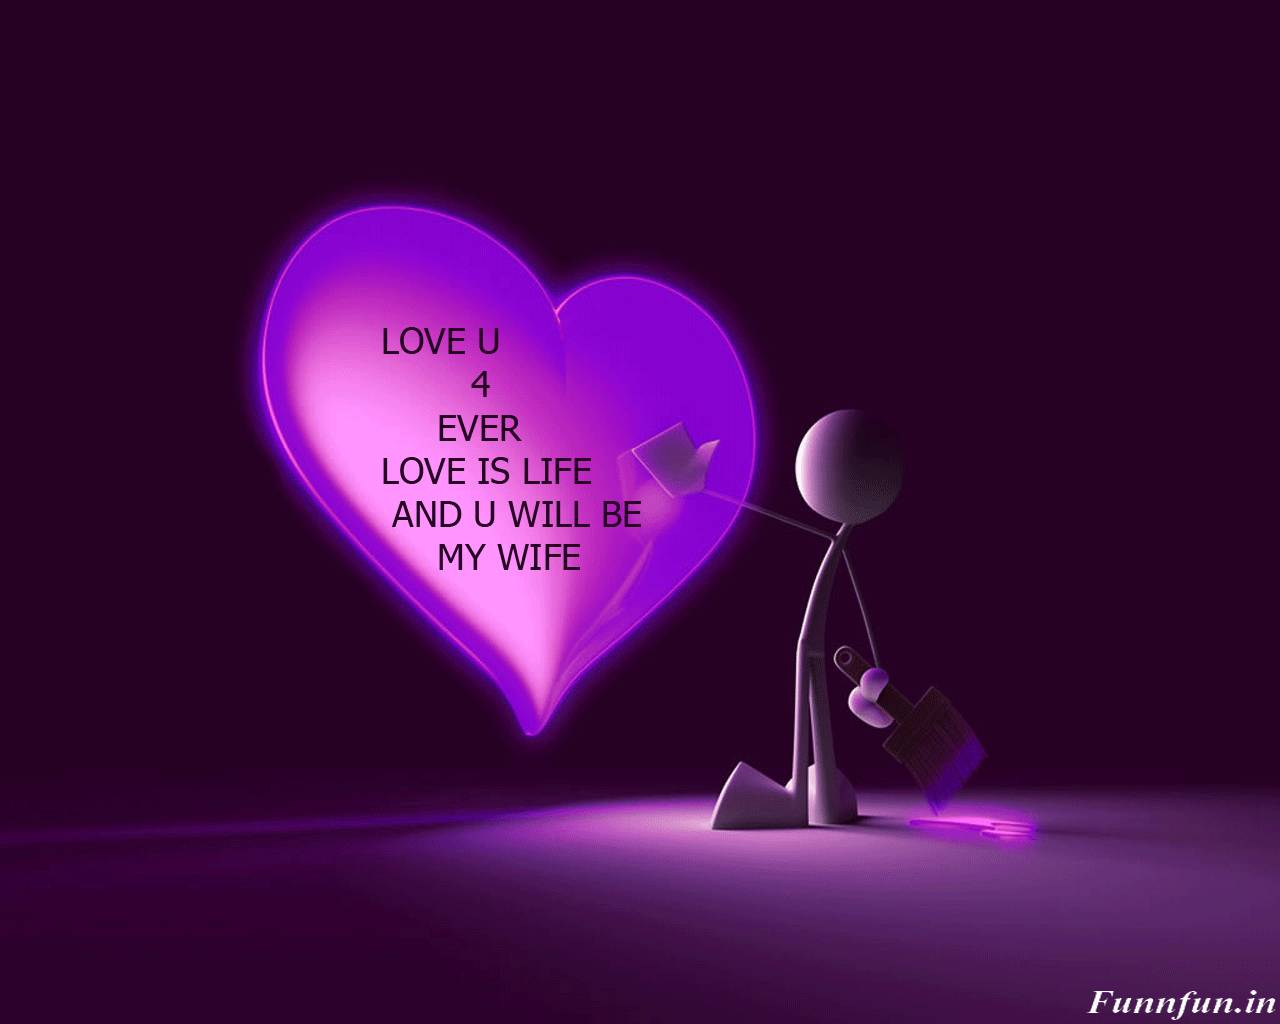 Hd wallpaper quotes on love - Funny Love Quotes Wallpaper Download Best Desktop Hd Wallpapers